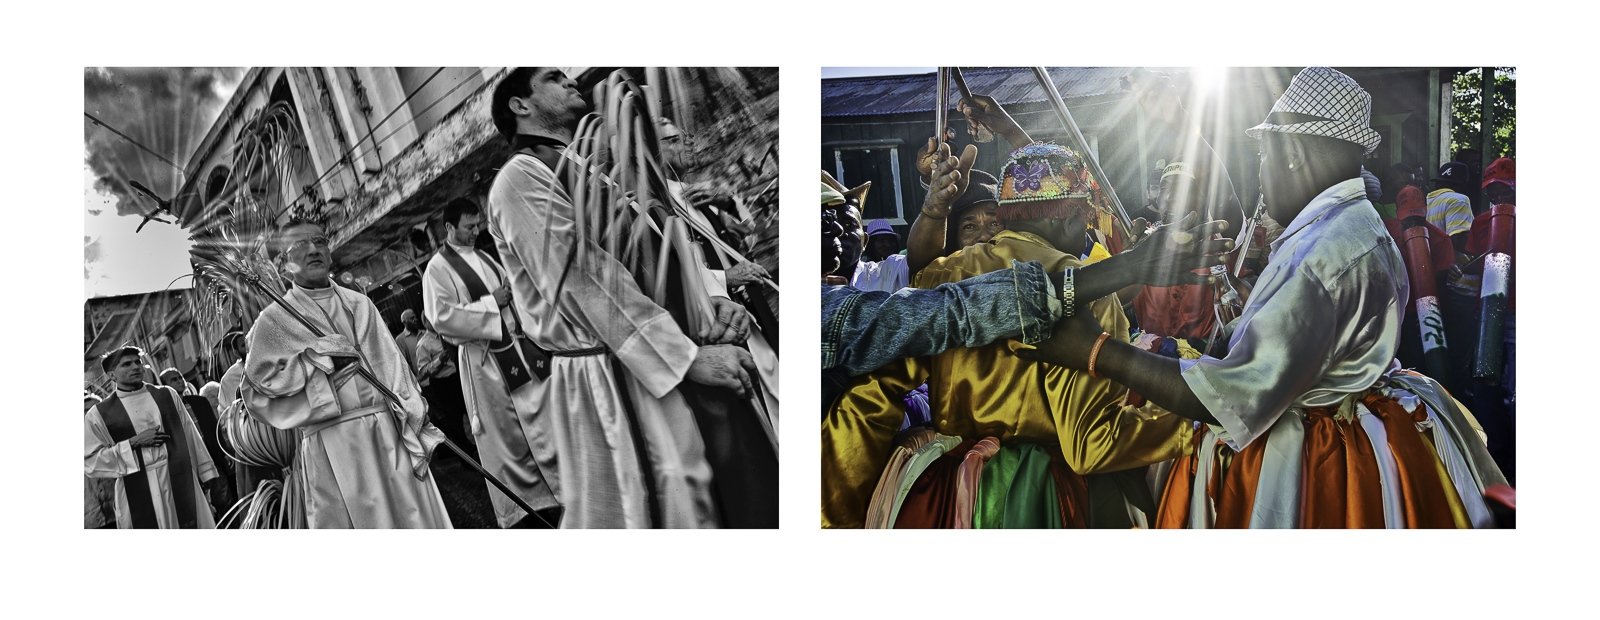 Art and Documentary Photography - Loading 3_Procesion._2011____PFN.jpg